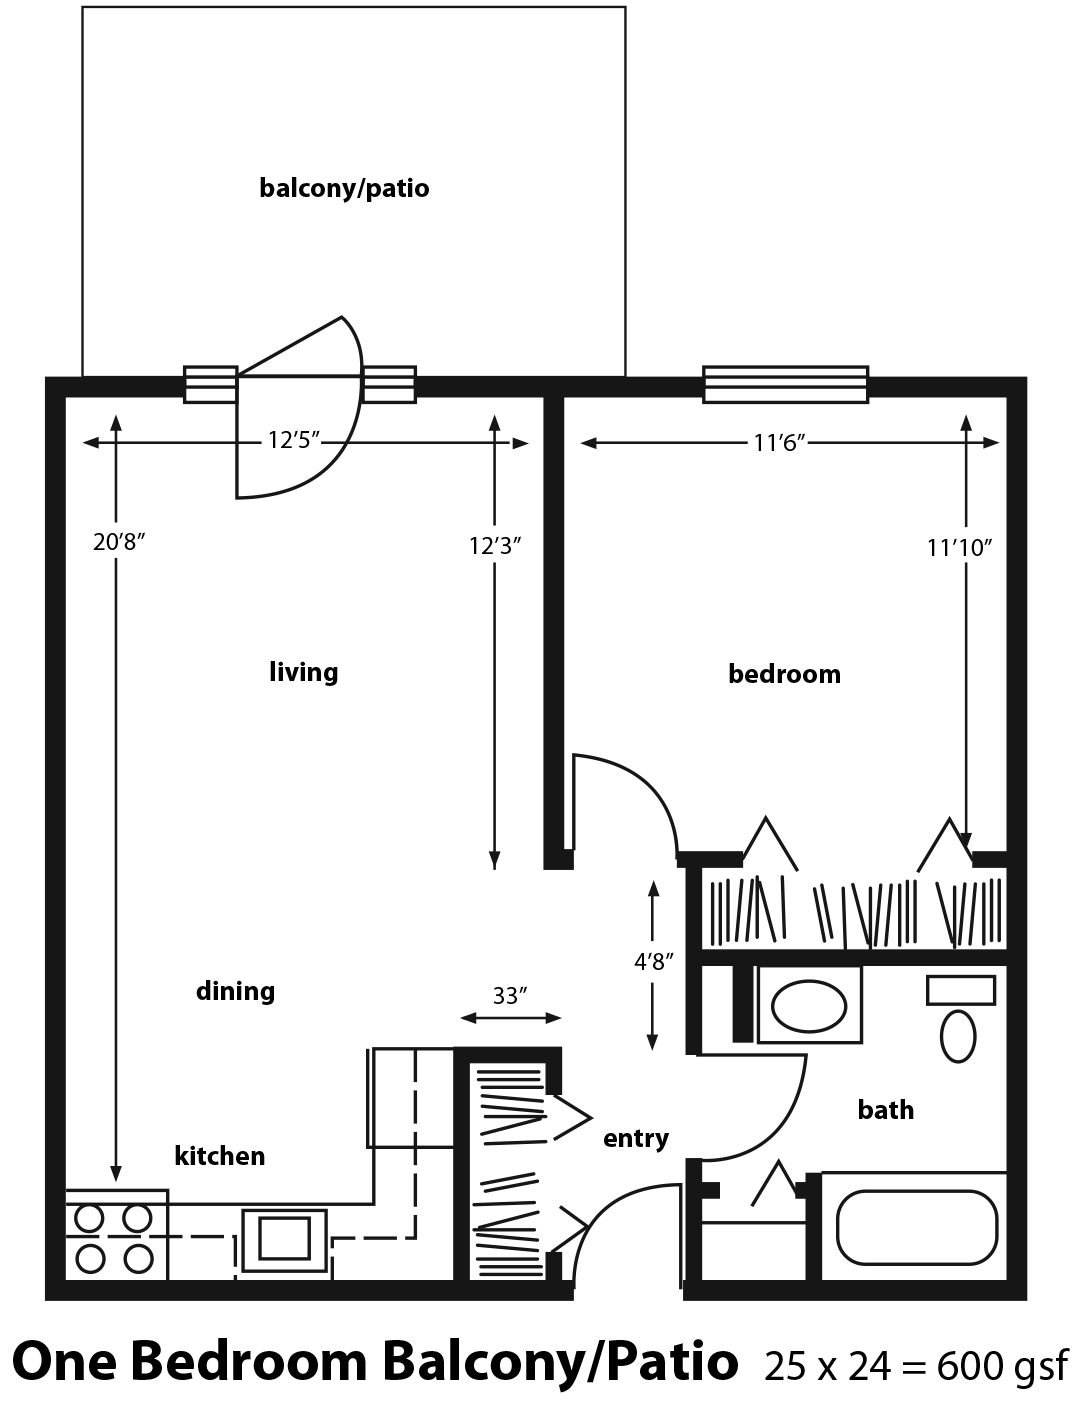 One Bedroom With Patio Or Balcony Floor Plan